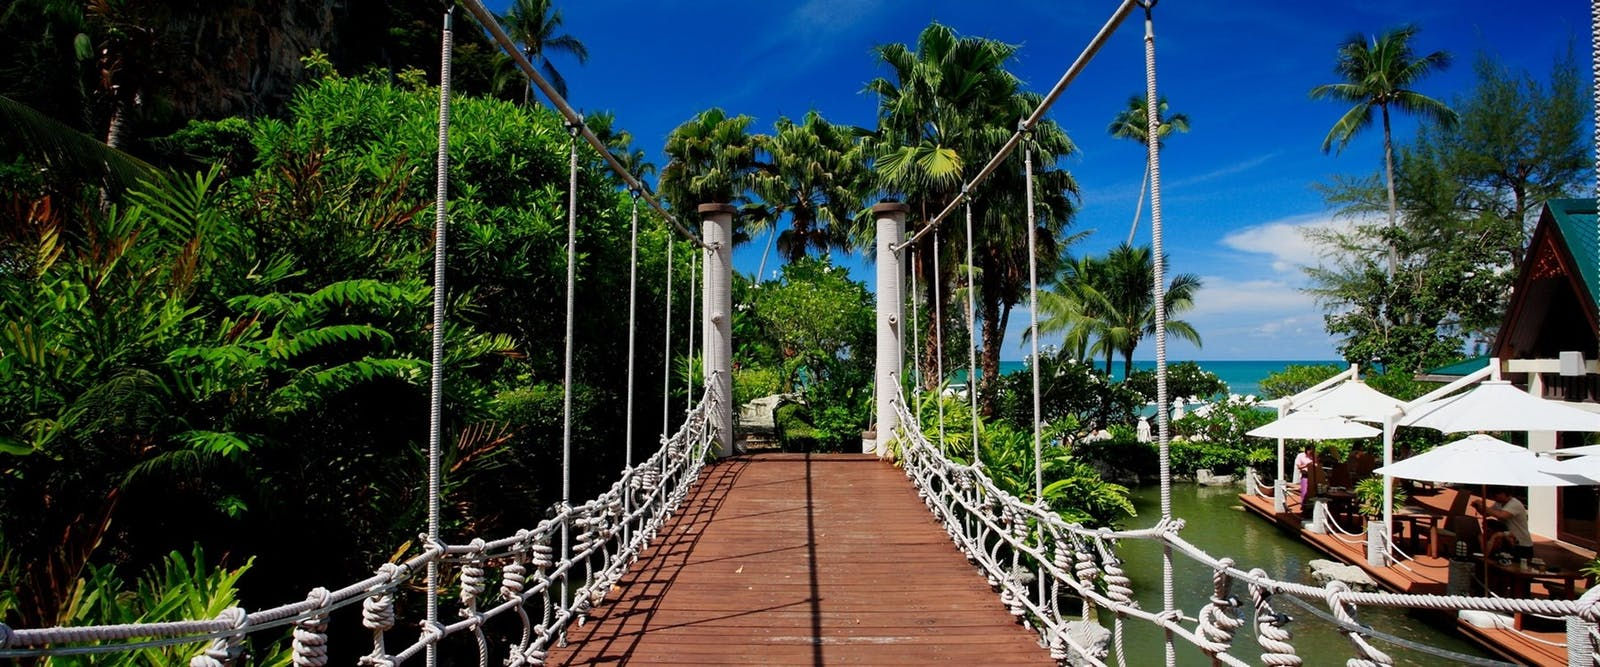 Walkway at Centara Grand Beach Resort & Villas Krabi